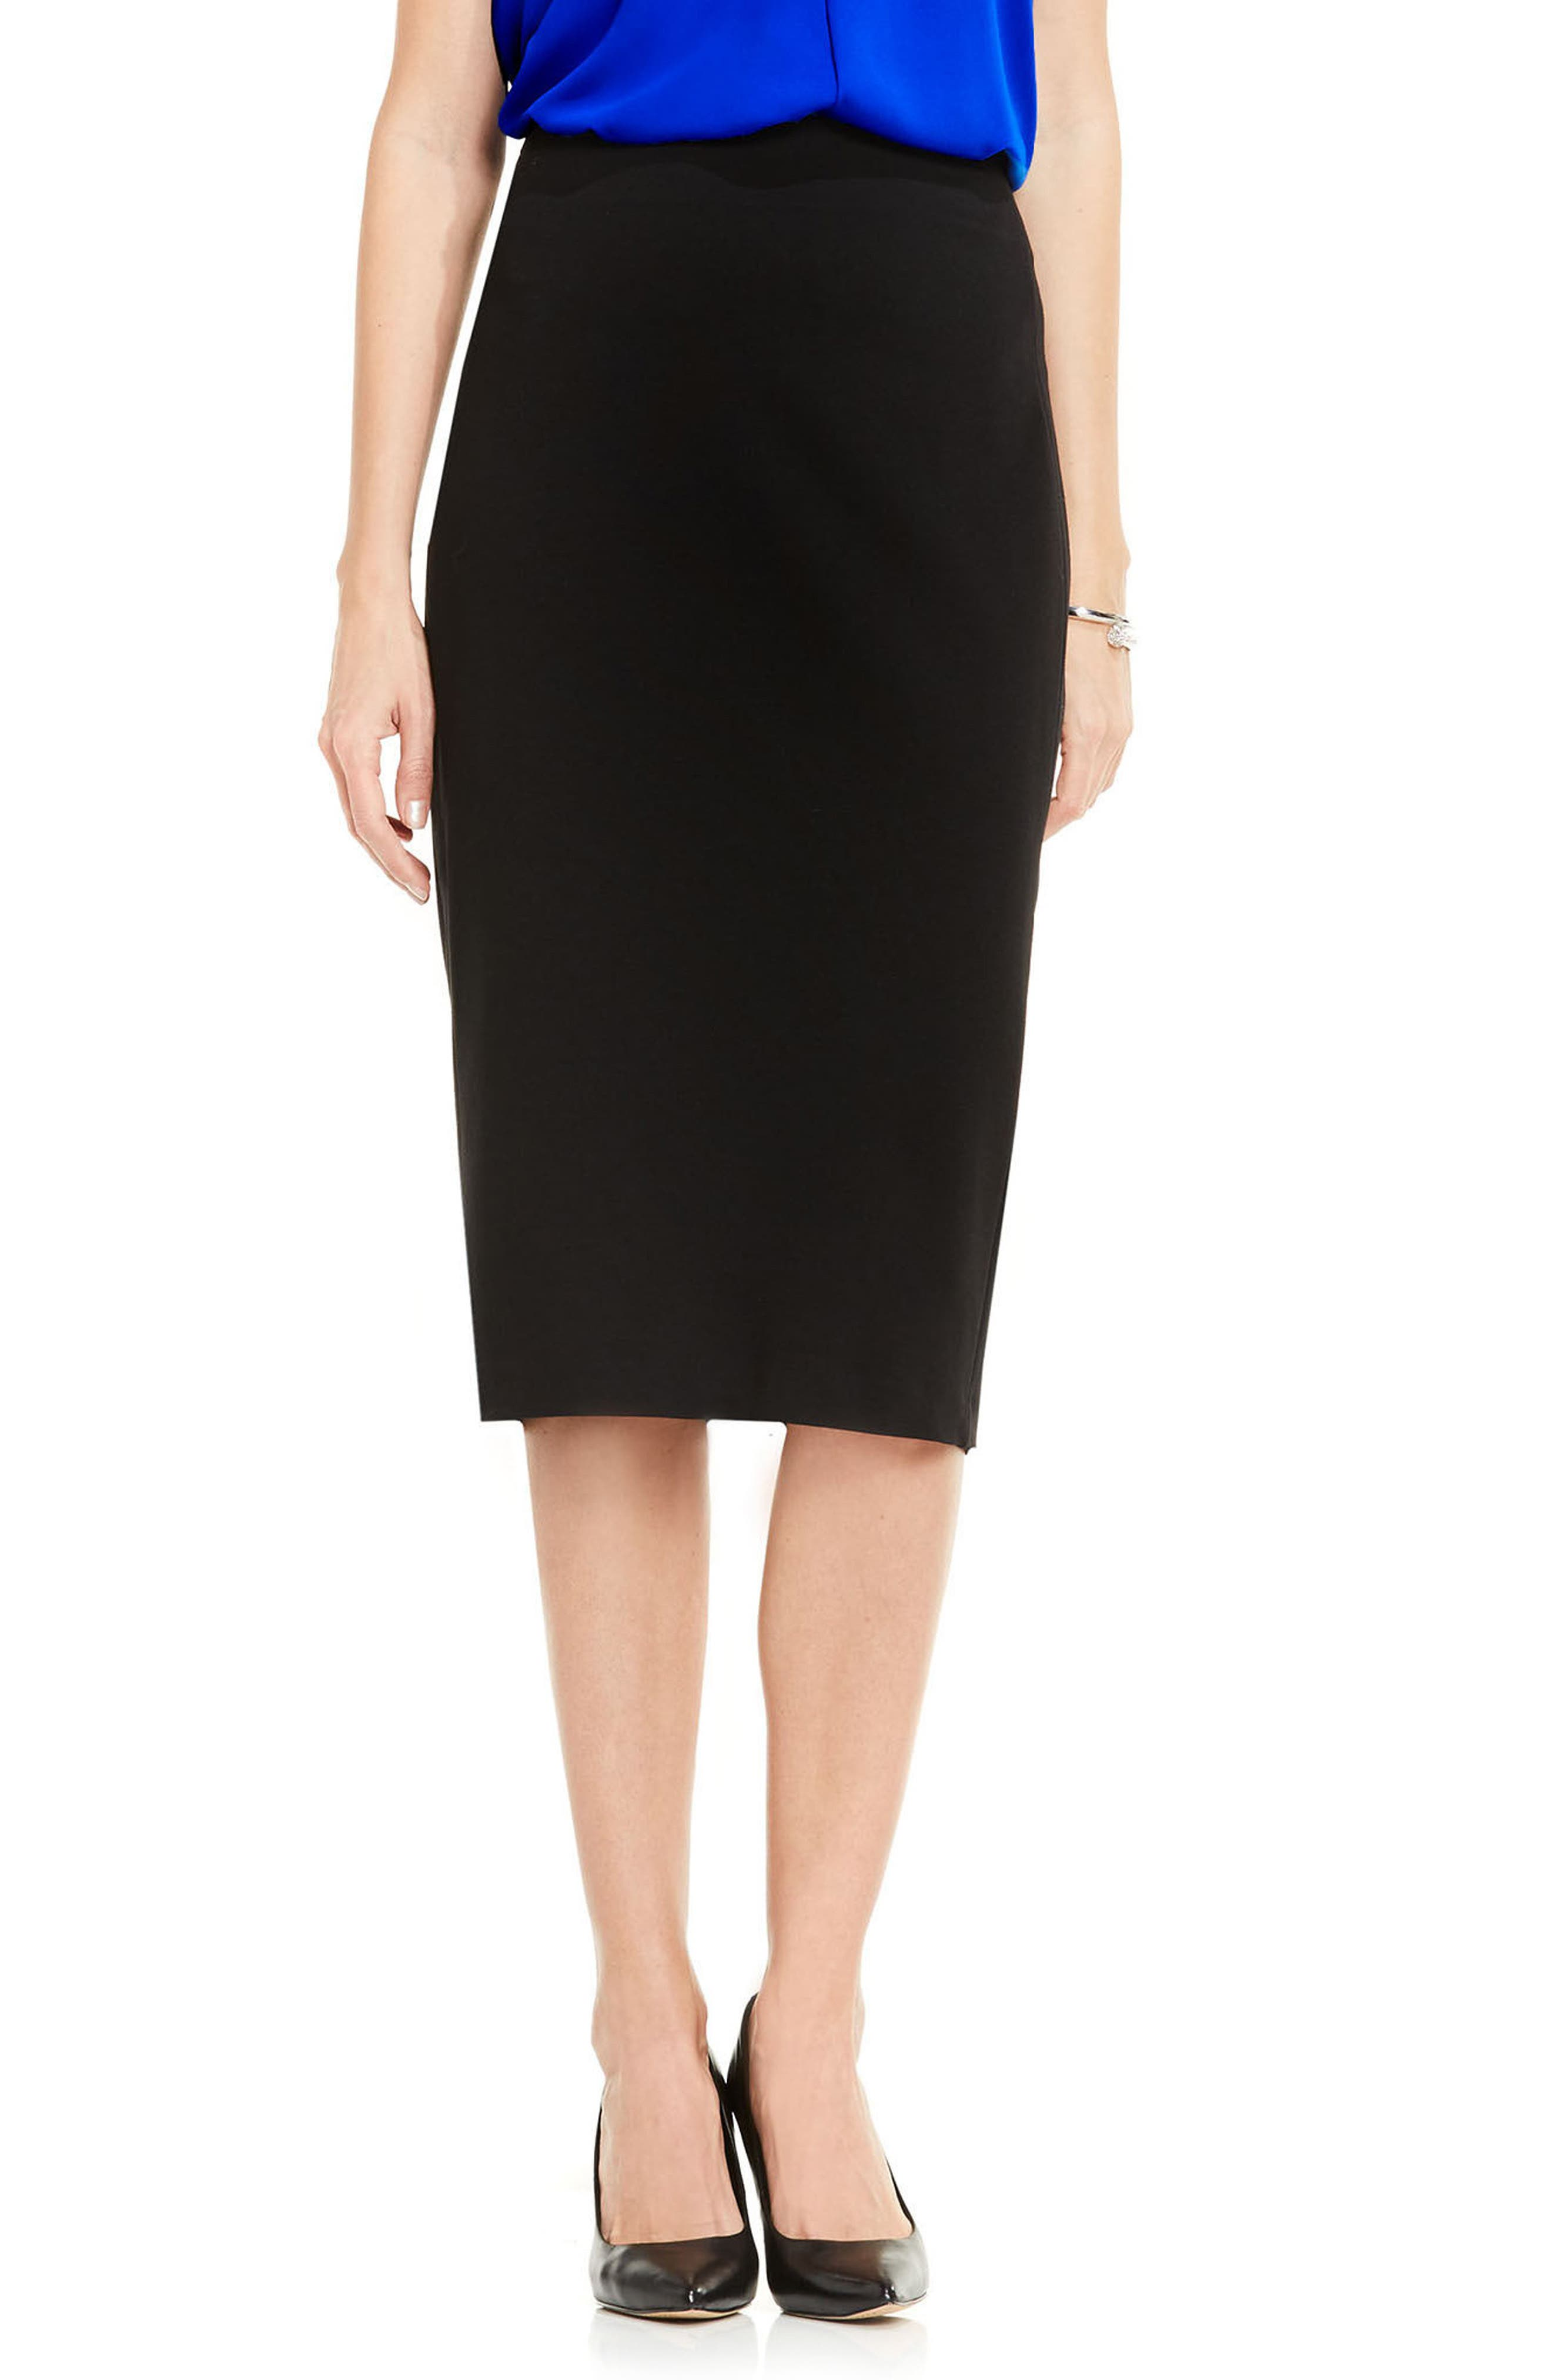 VINCE CAMUTO, Pull-On Pencil Skirt, Main thumbnail 1, color, RICH BLACK